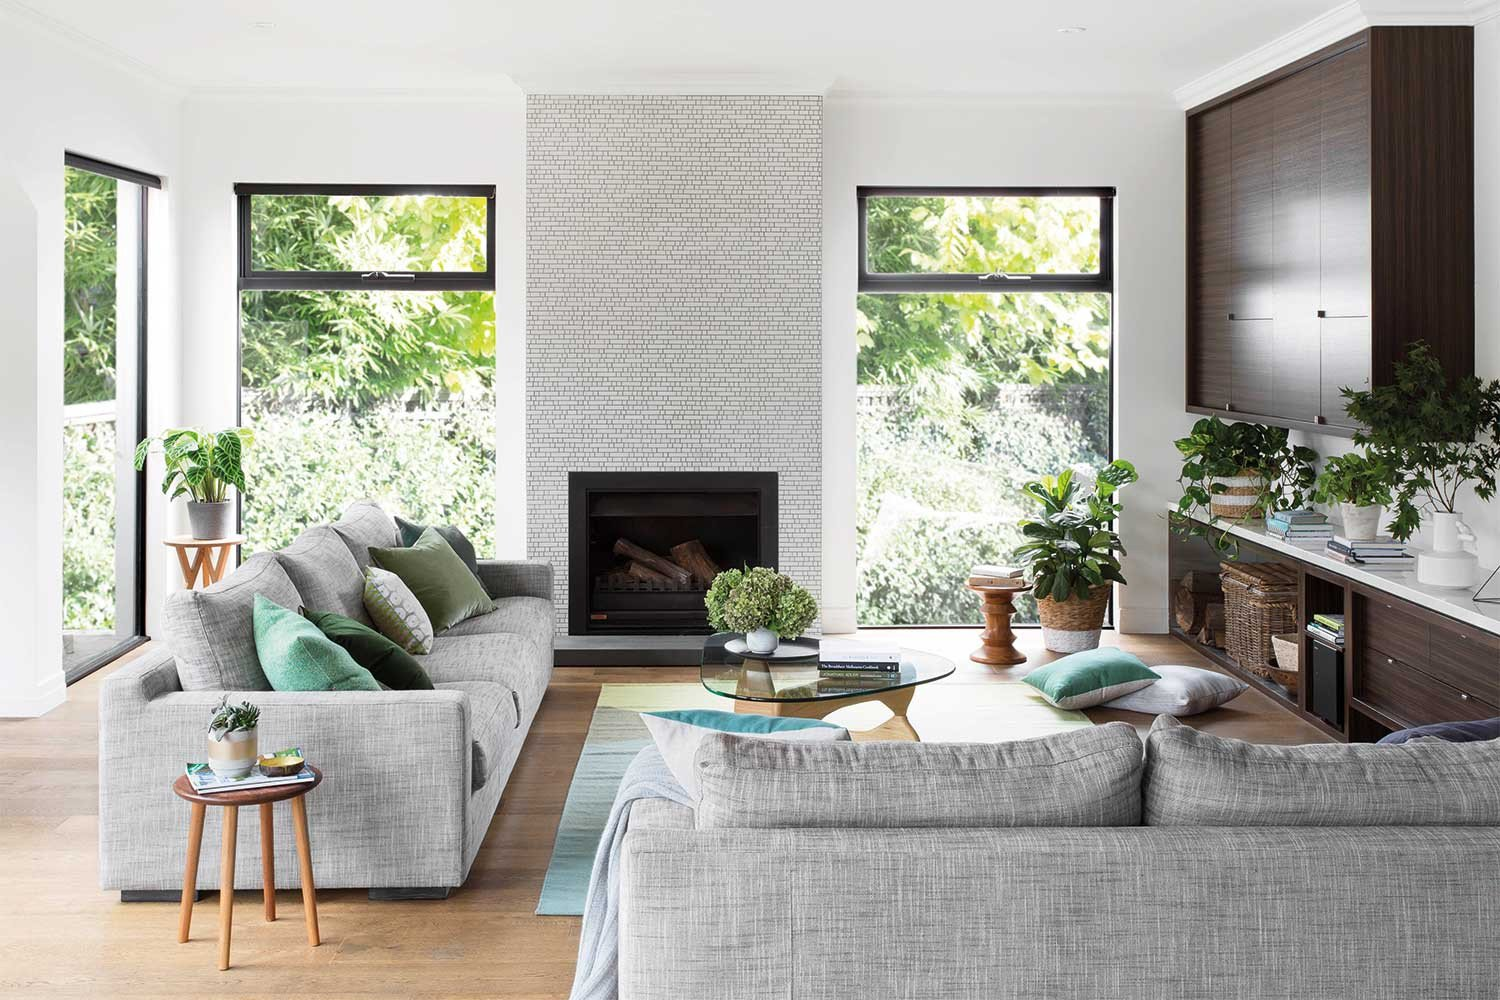 Small Living Room Makeover Ideas Bud Living Room Makeover for Under $300